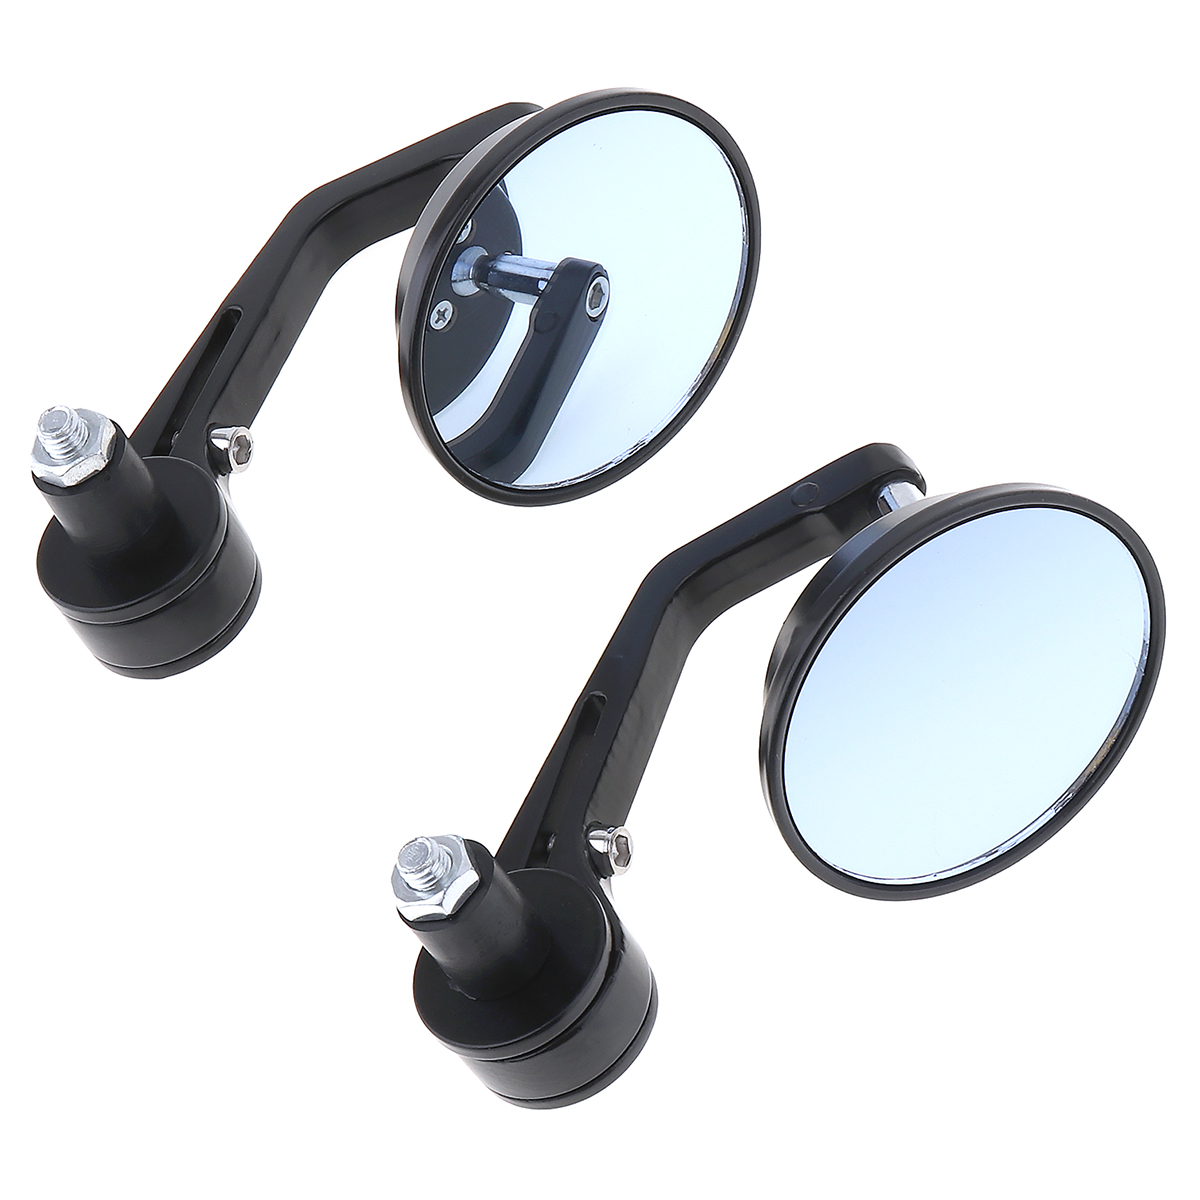 "Round 7/8"" Handlebar Aluminum Alloy Motocycle Rearview Mirrors End Modified Rear-view Mirror Motorcycle Accessories 2pcs"